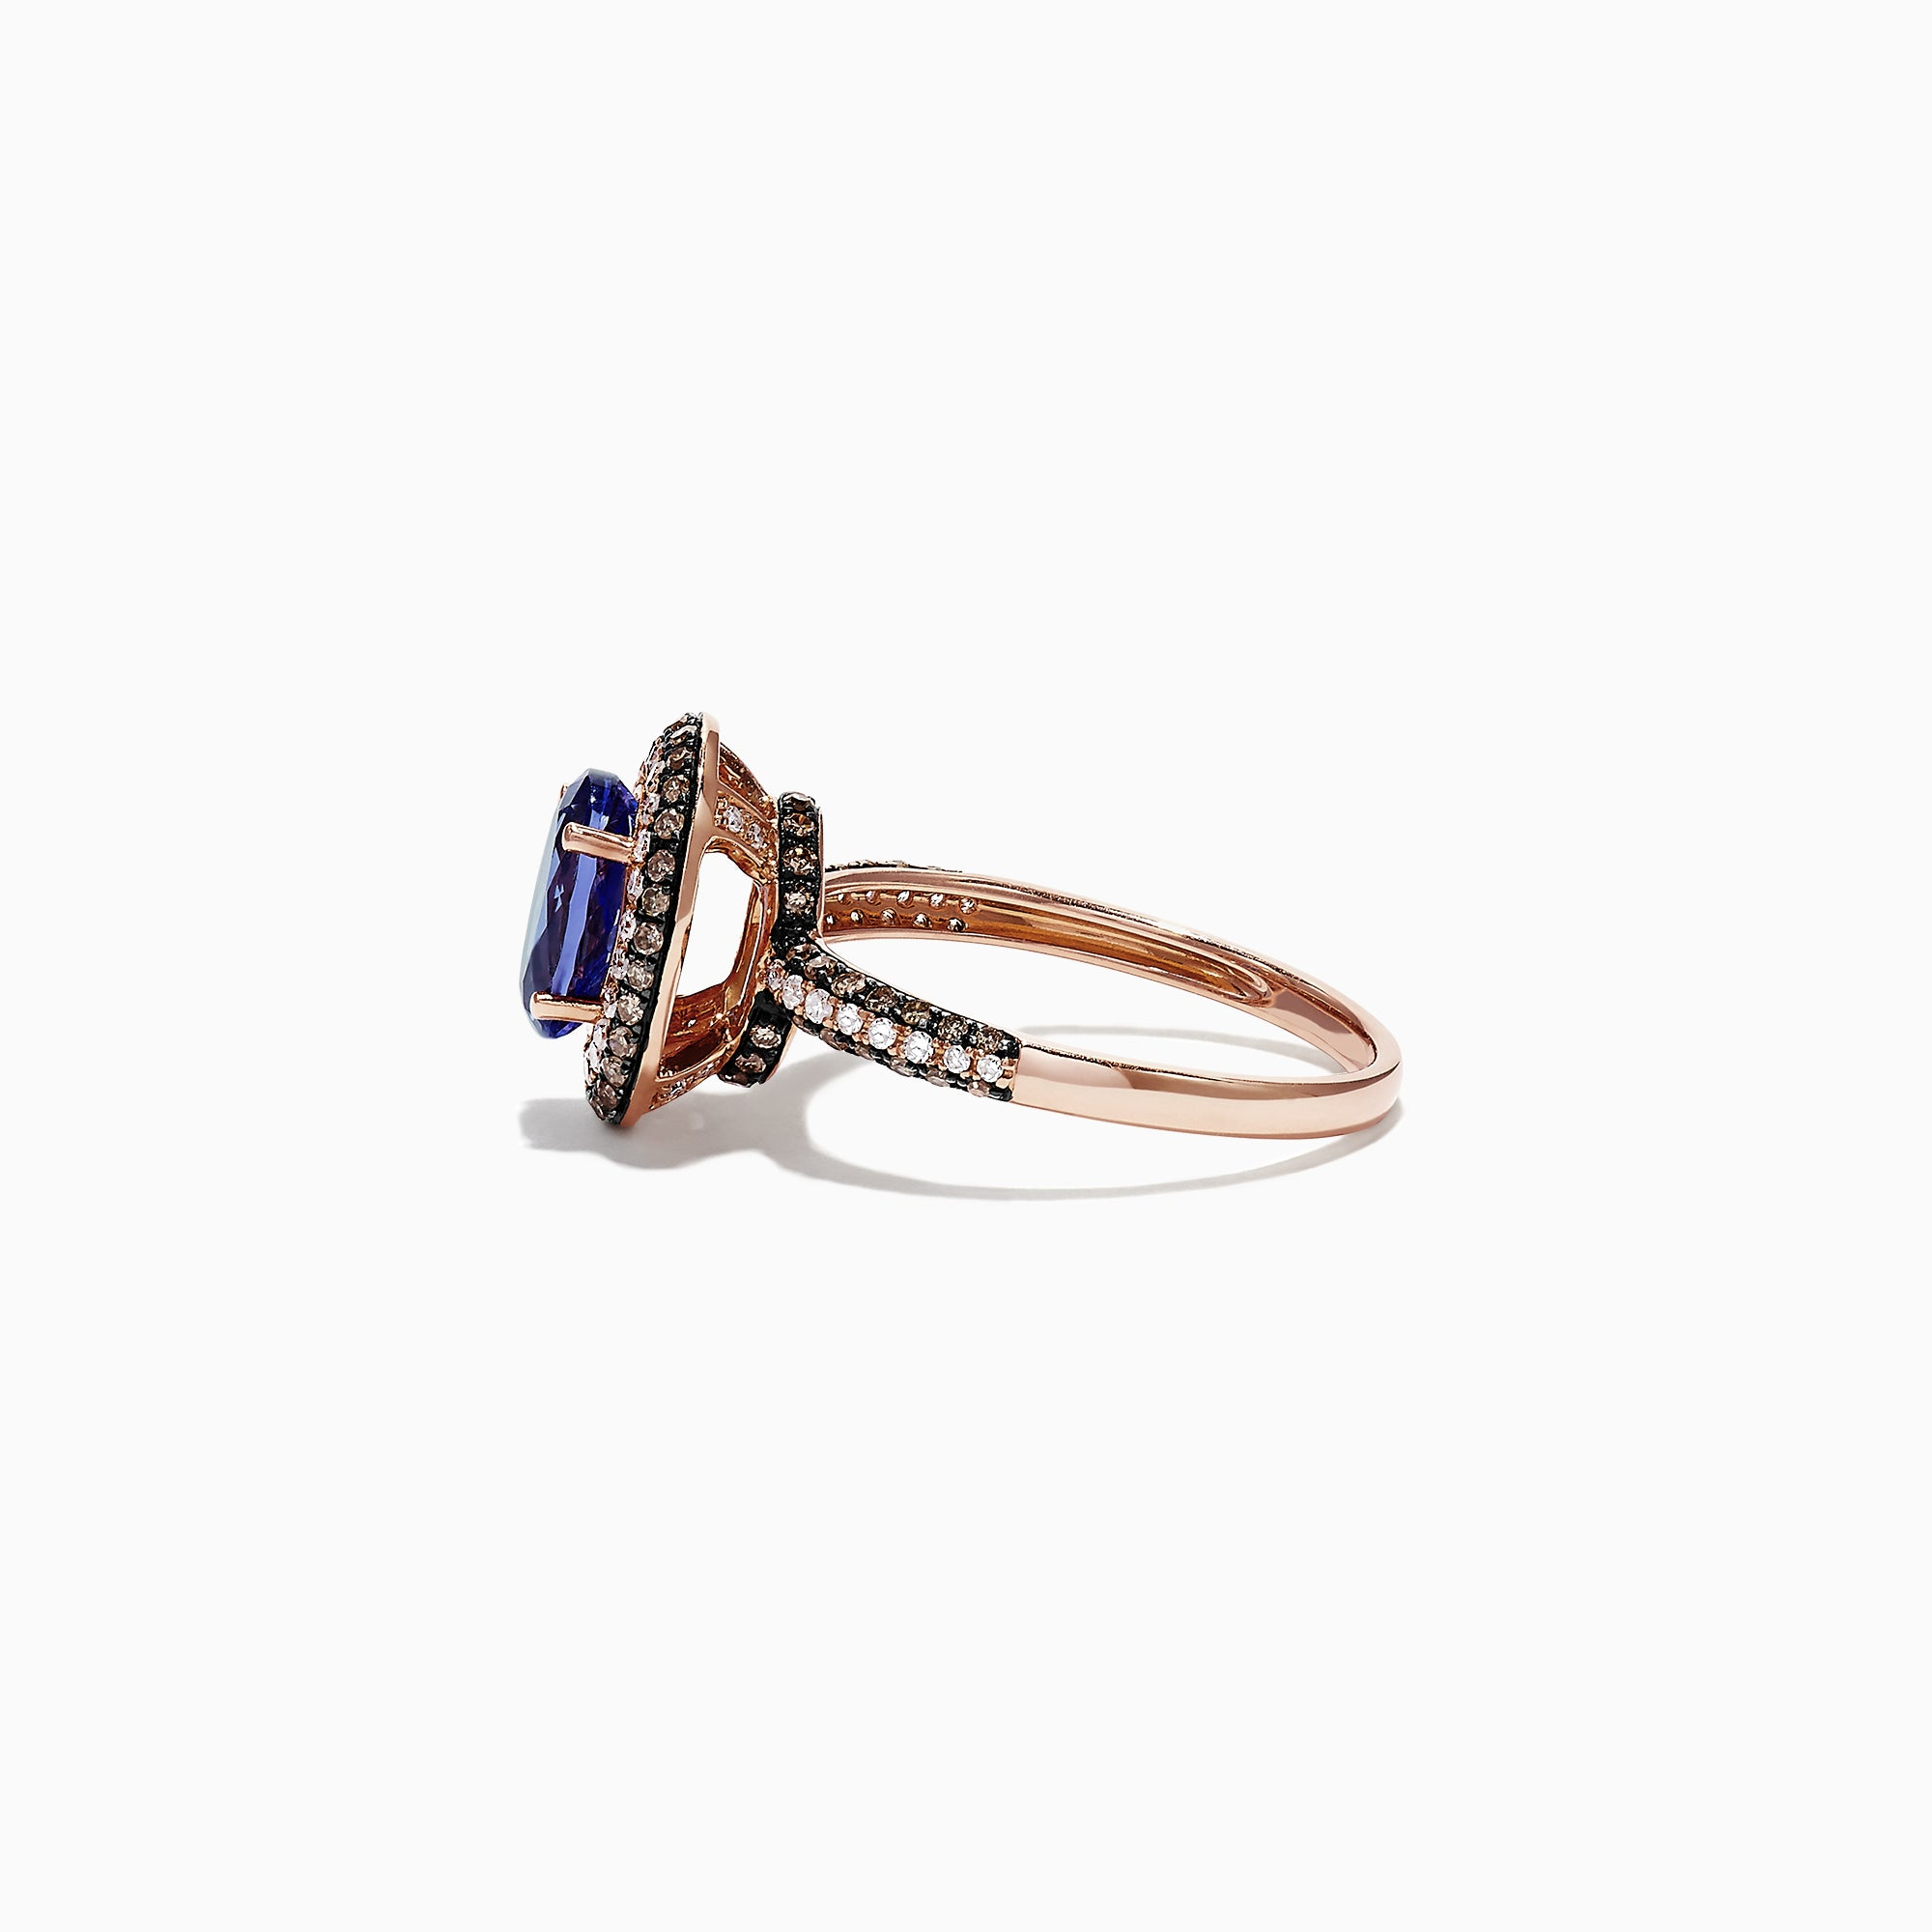 Effy 14K Rose Gold Oval Tanzanite and Diamond Ring, 1.69 TCW